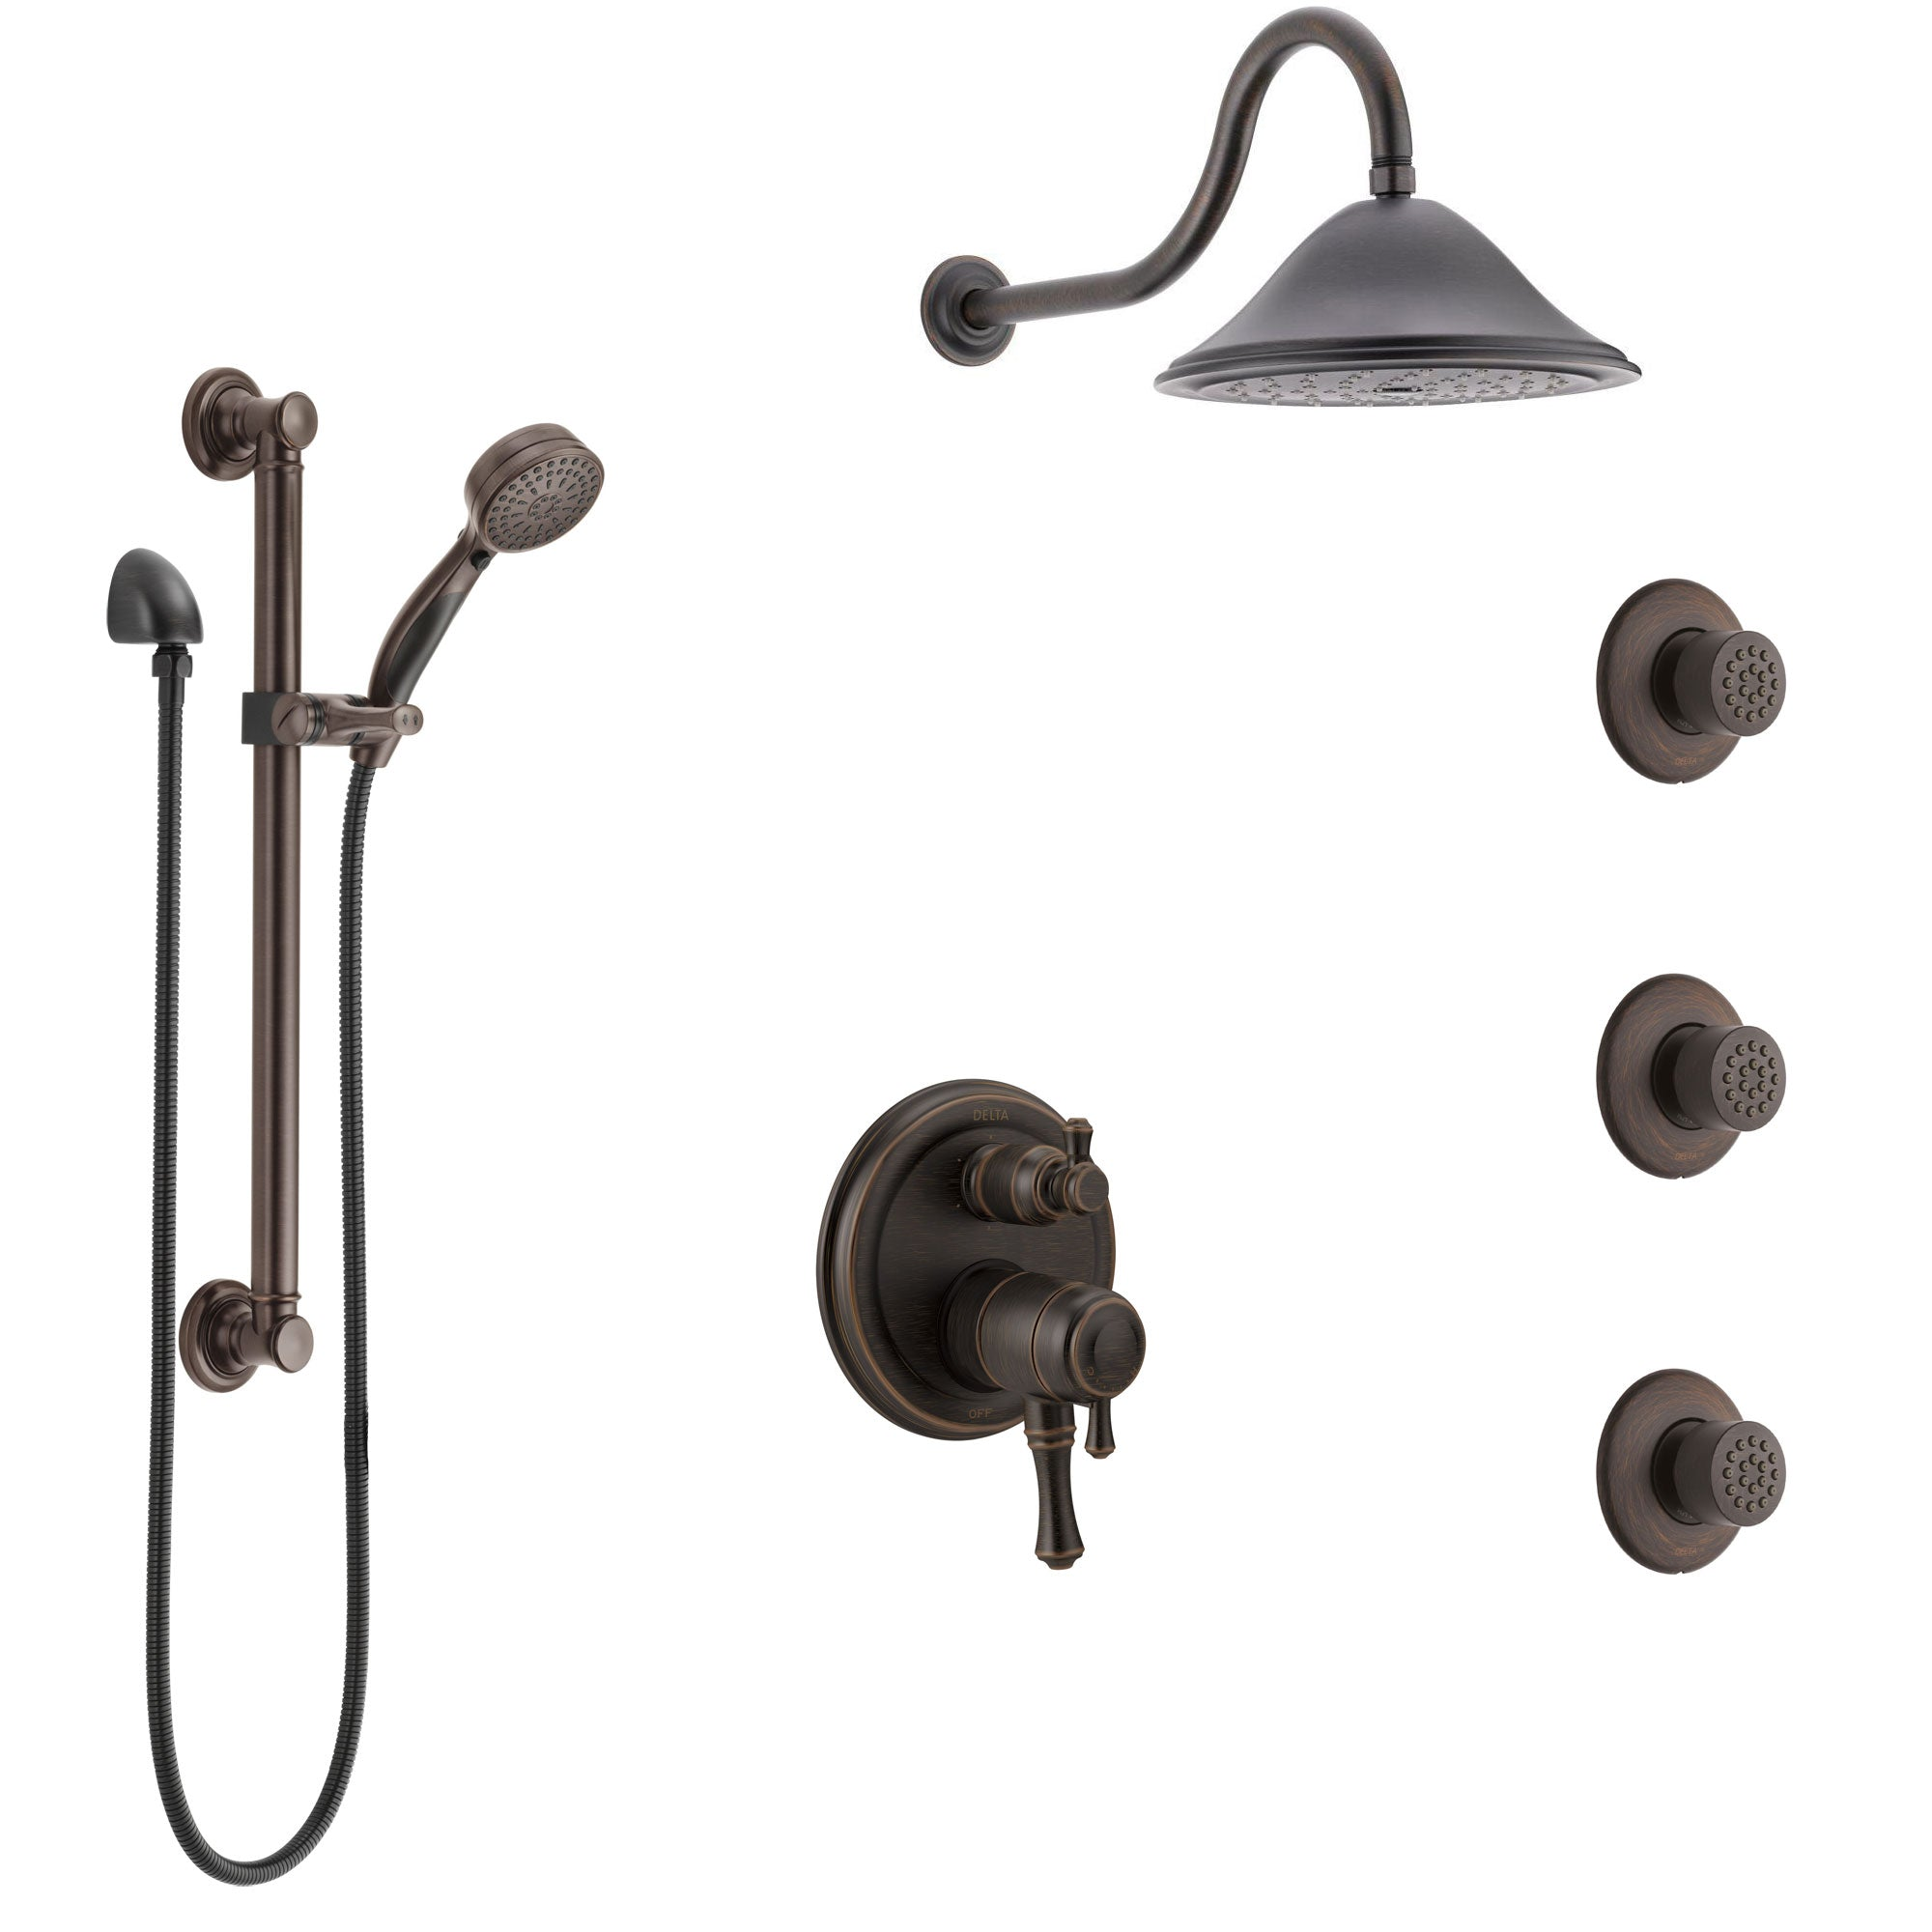 Delta Cassidy Venetian Bronze Shower System with Dual Control Handle, Integrated Diverter, Showerhead, 3 Body Sprays, Grab Bar Hand Spray SS27997RB3